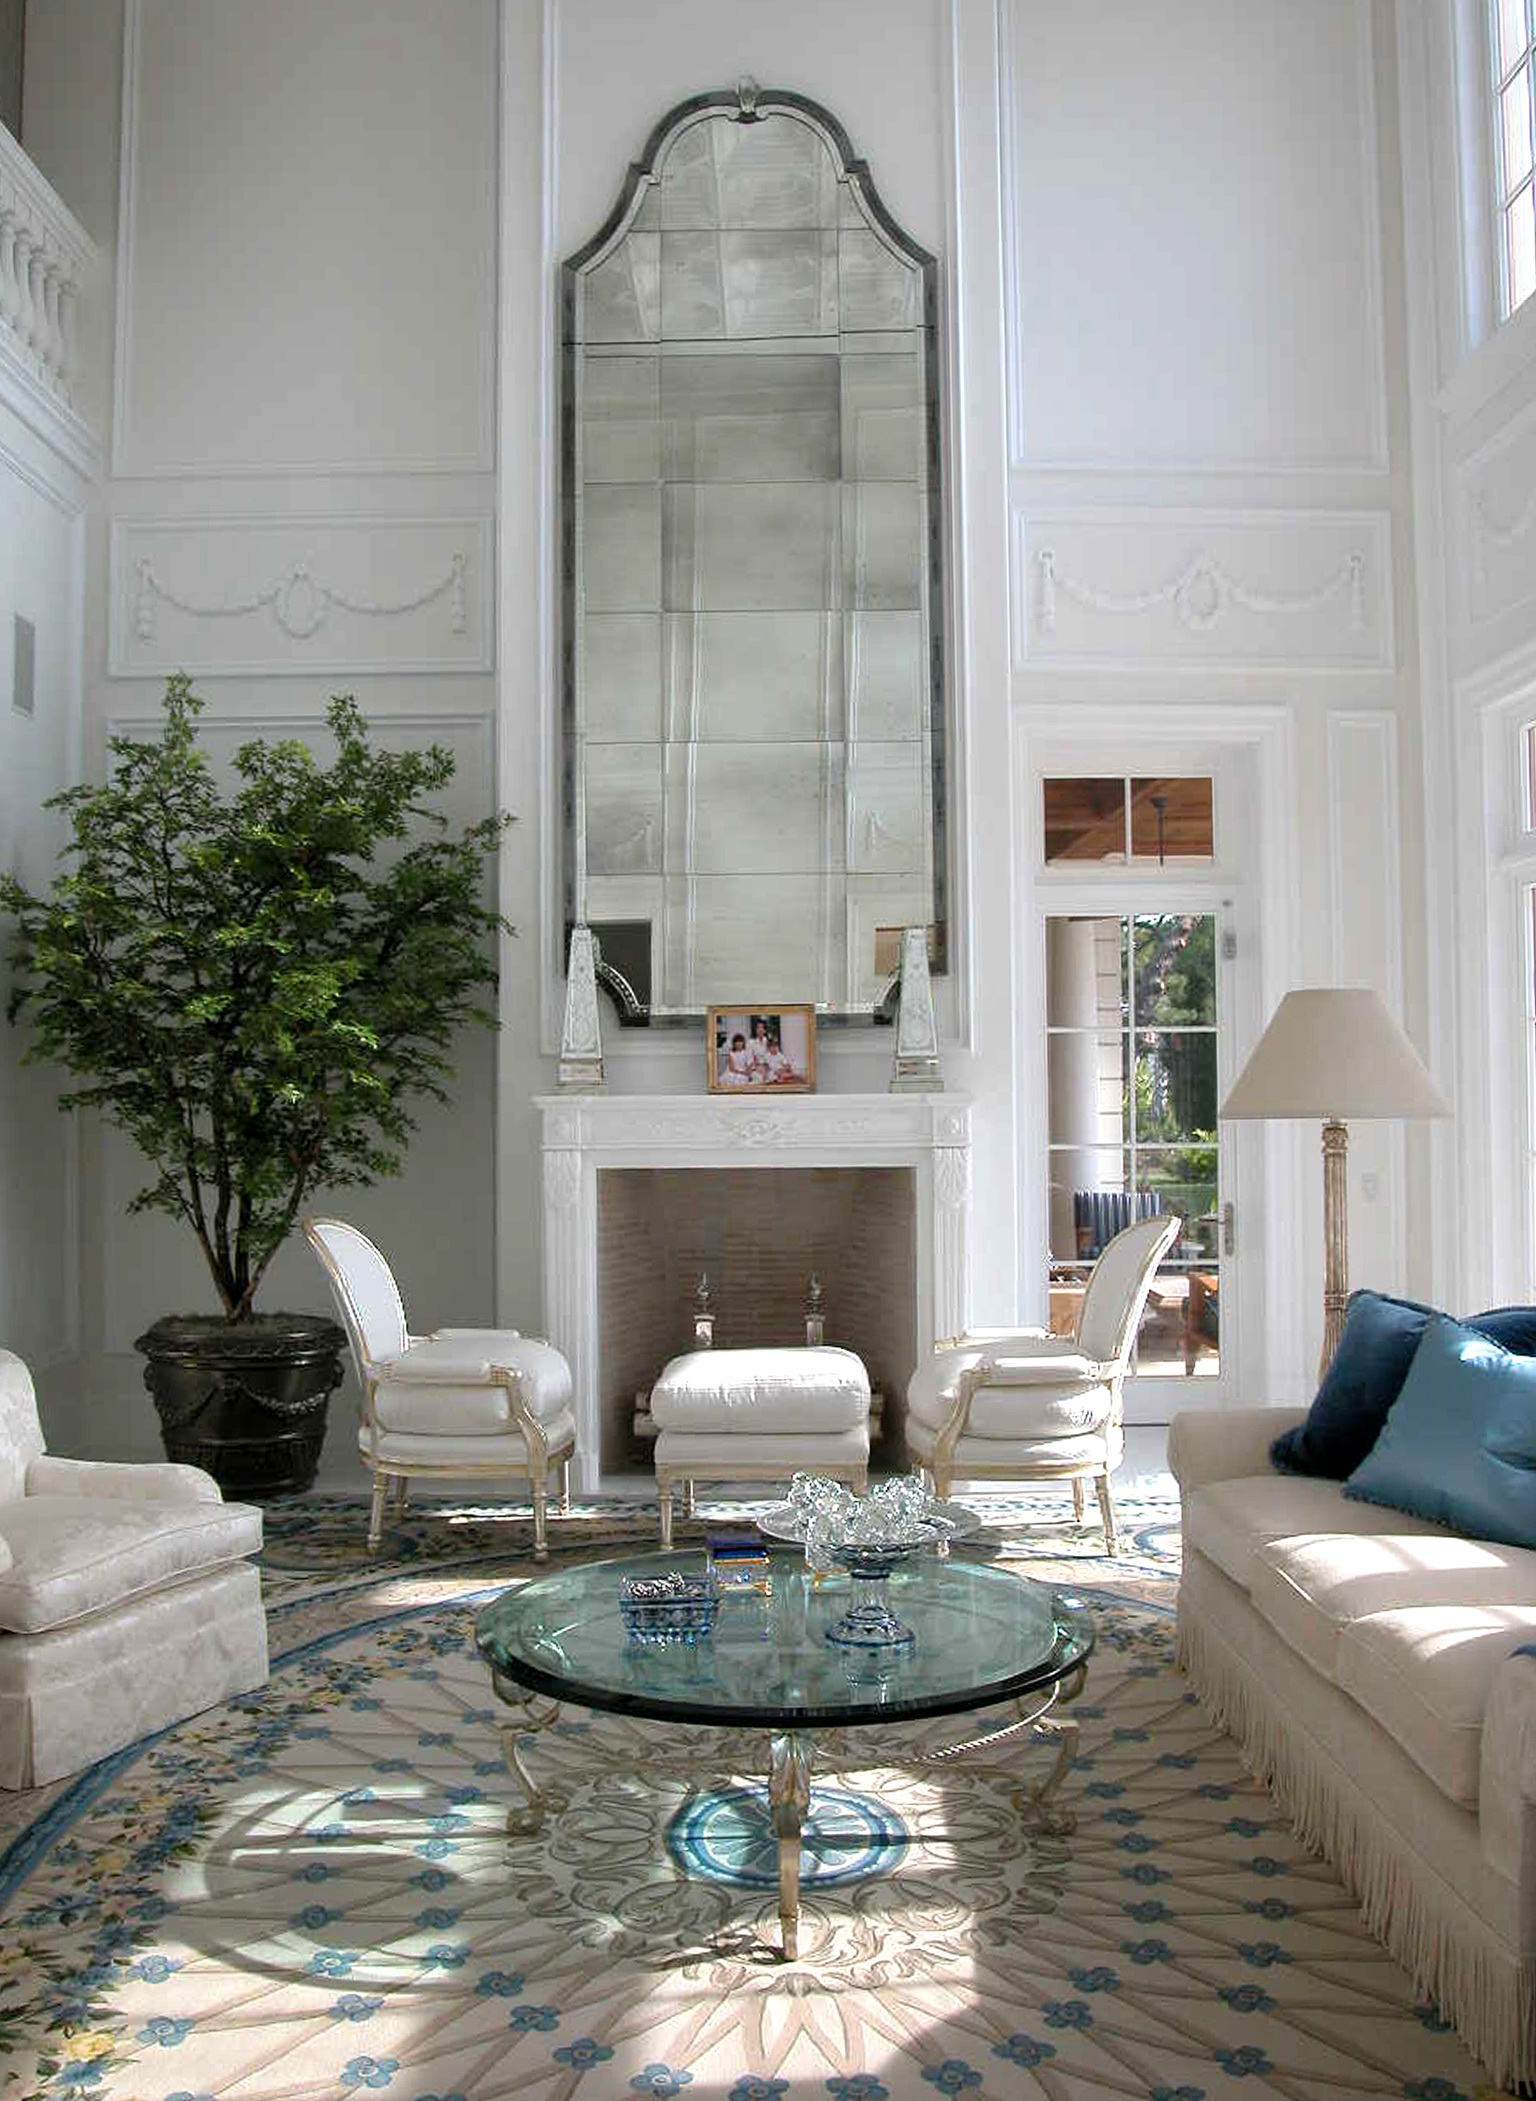 stunning mirror over fireplace contemporary interior design